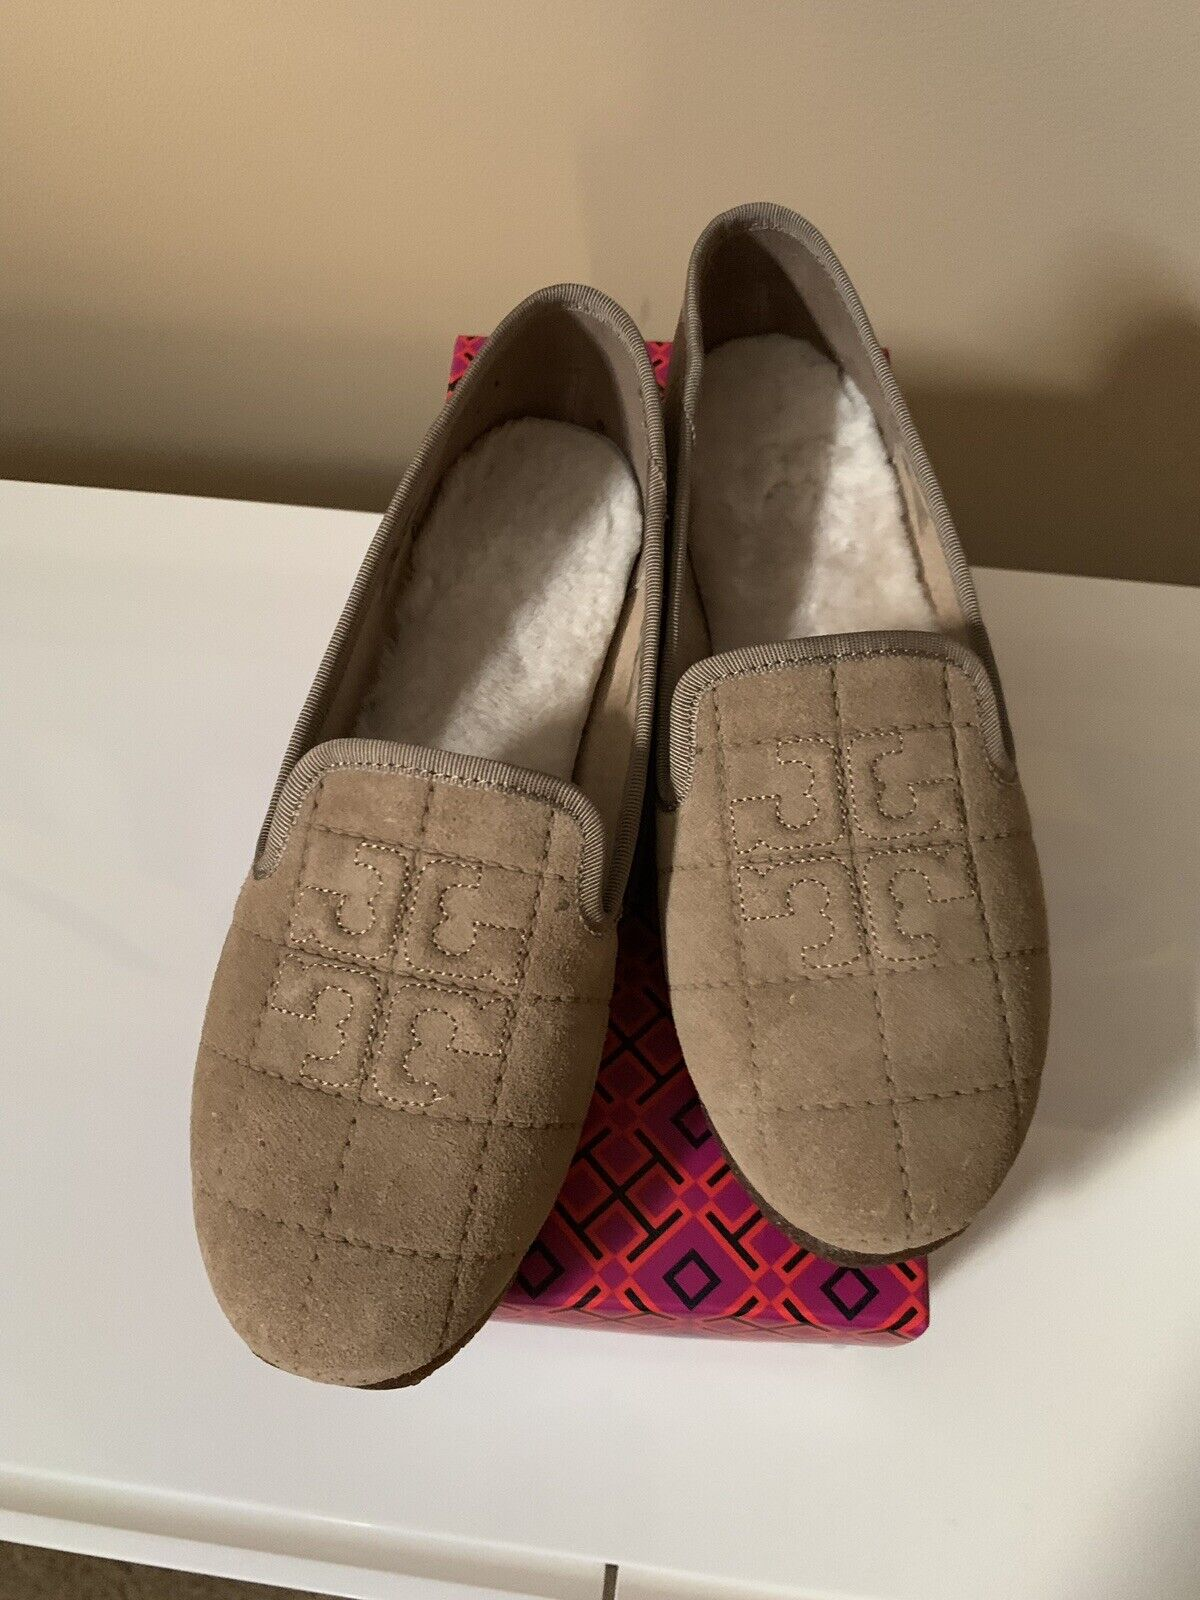 Brand New In Box Tory Burch Cowley Slipper - Camel - Dimensione 7